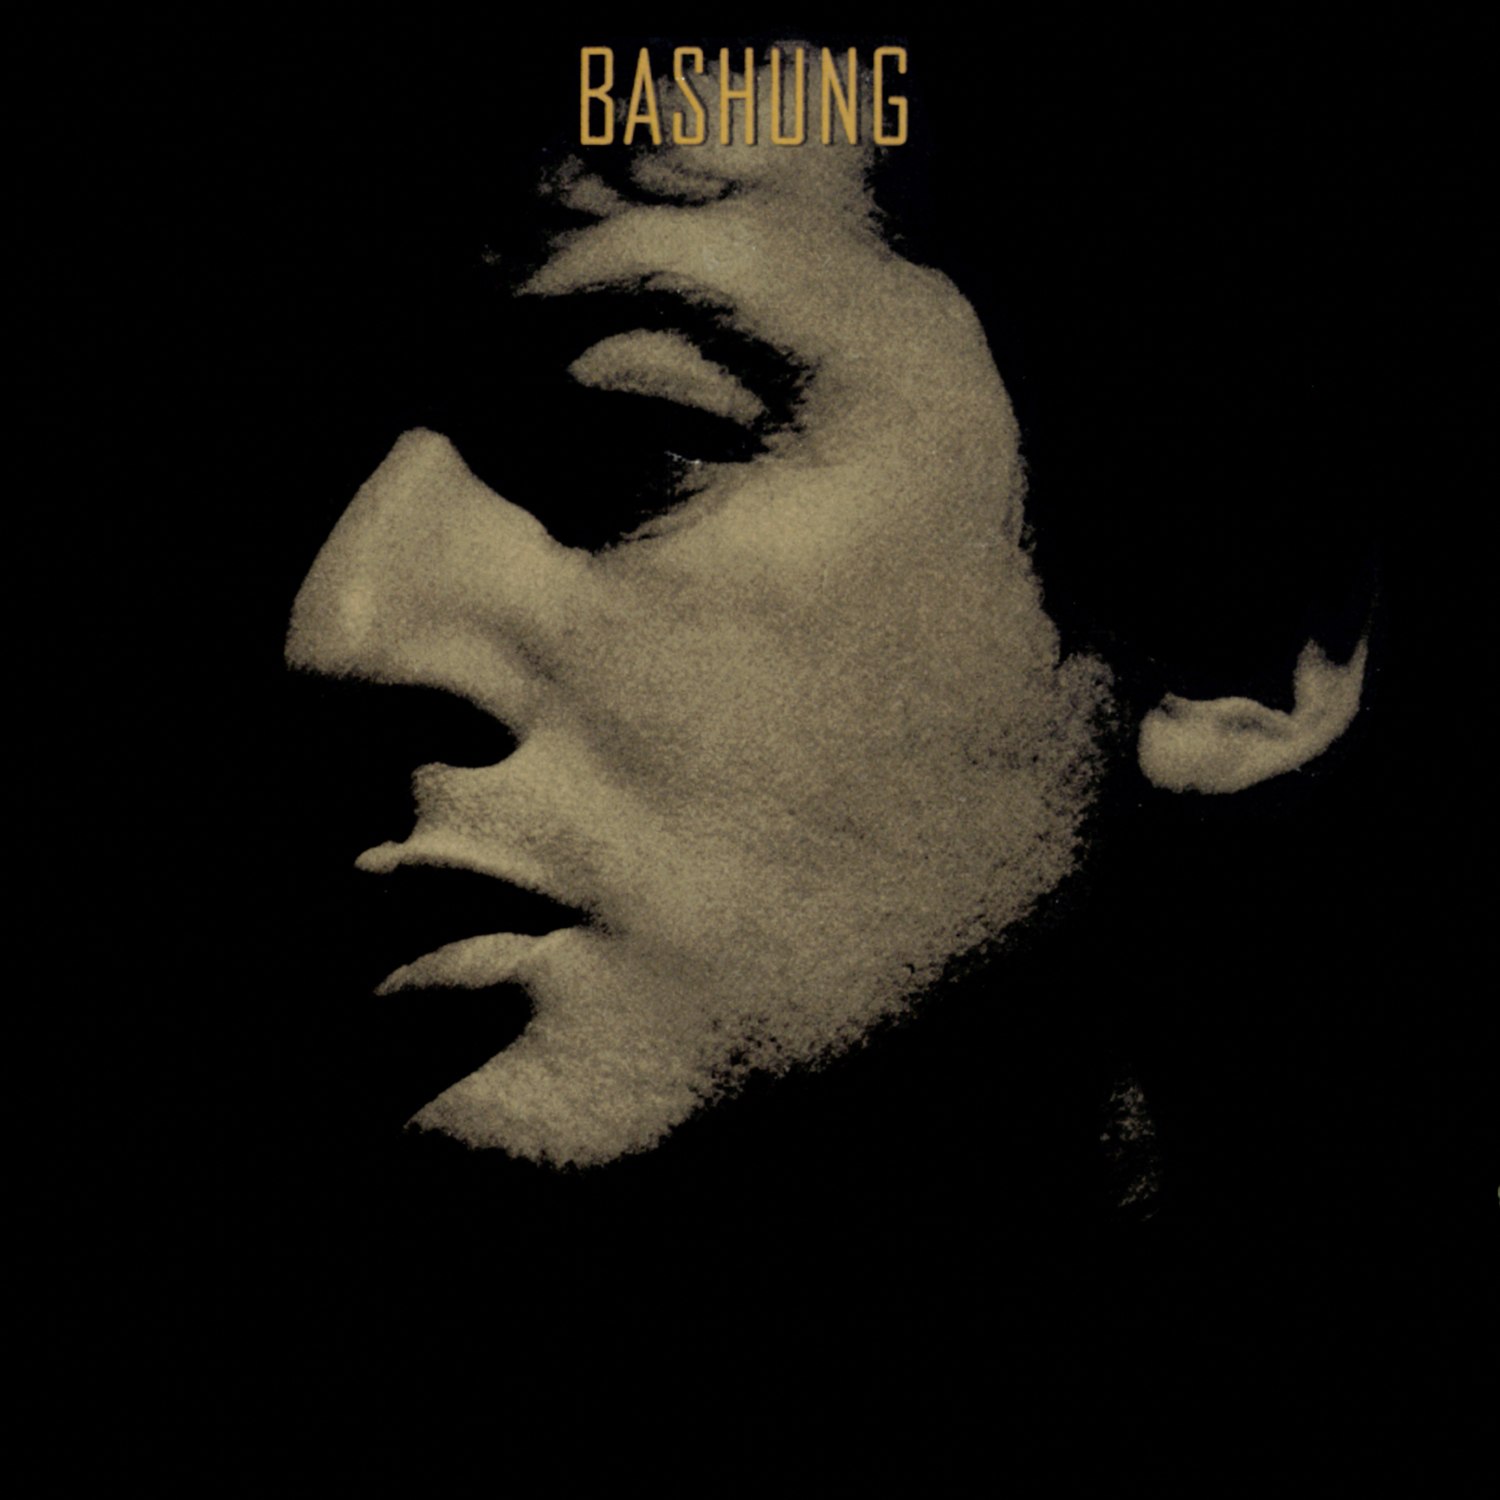 Bashung Novice